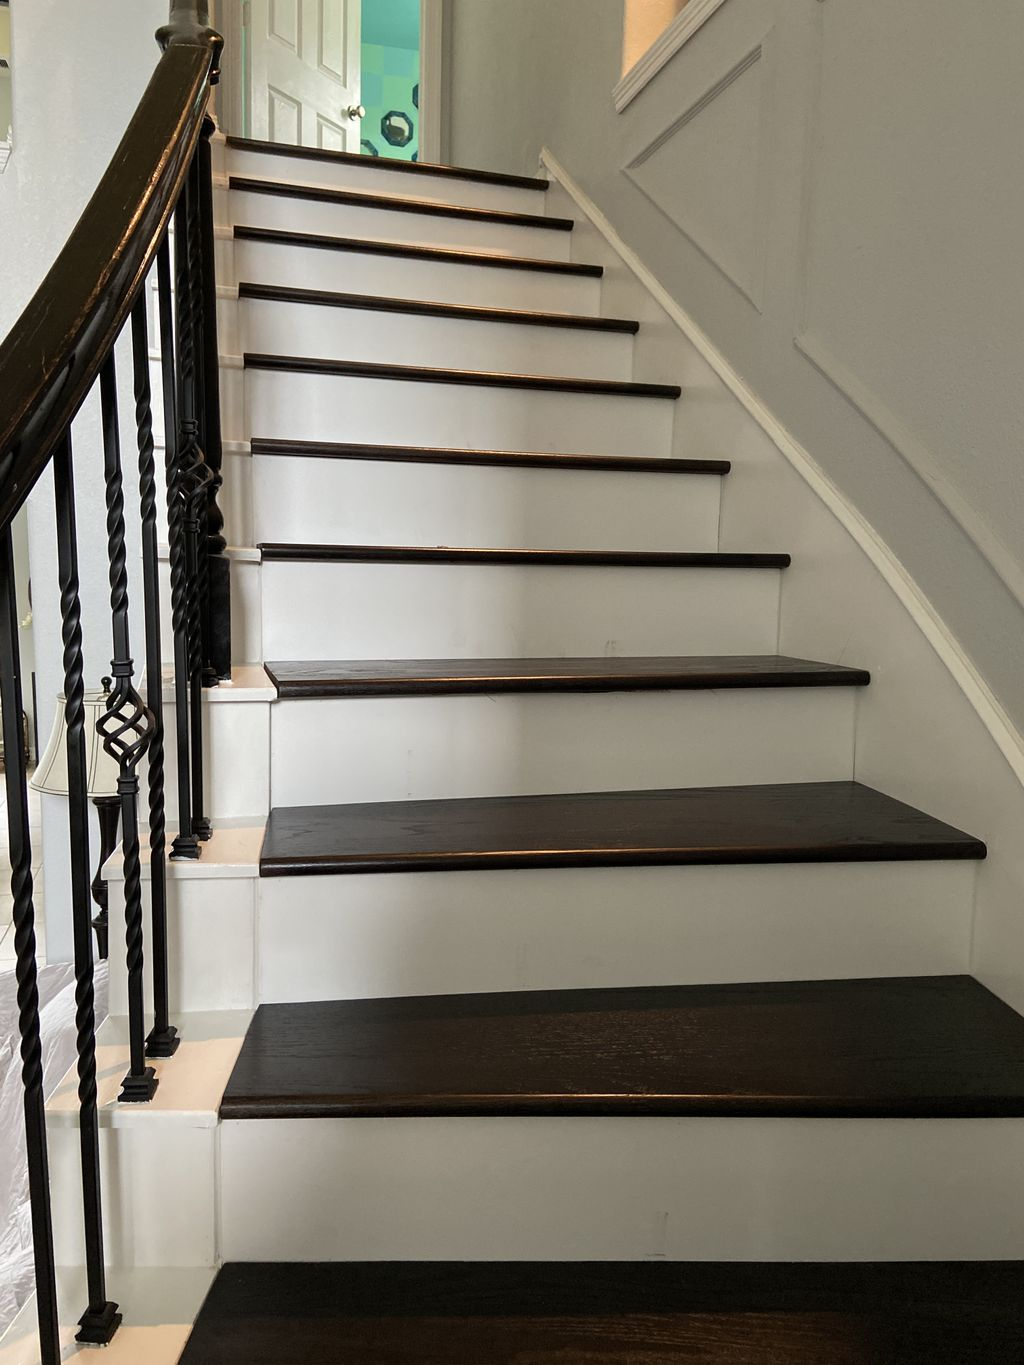 Carpet stairs converted to Hardwood stairs